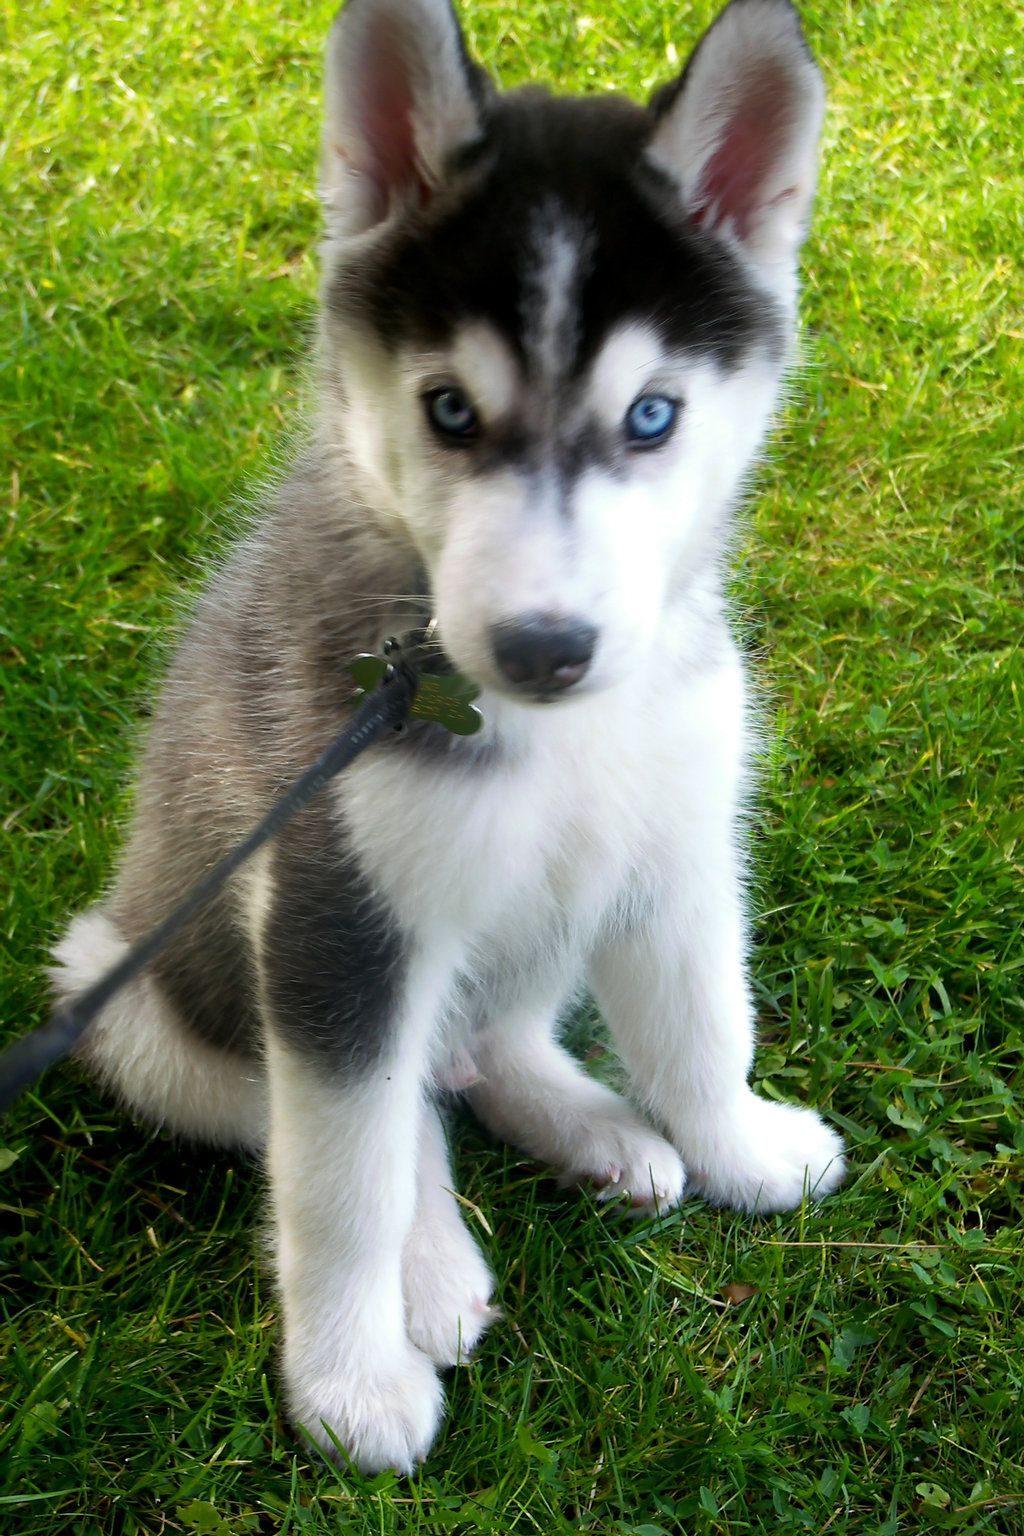 Puppy siberian husky by ellie koi on deviantart puppies 3 puppy siberian husky by ellie koi on deviantart voltagebd Image collections